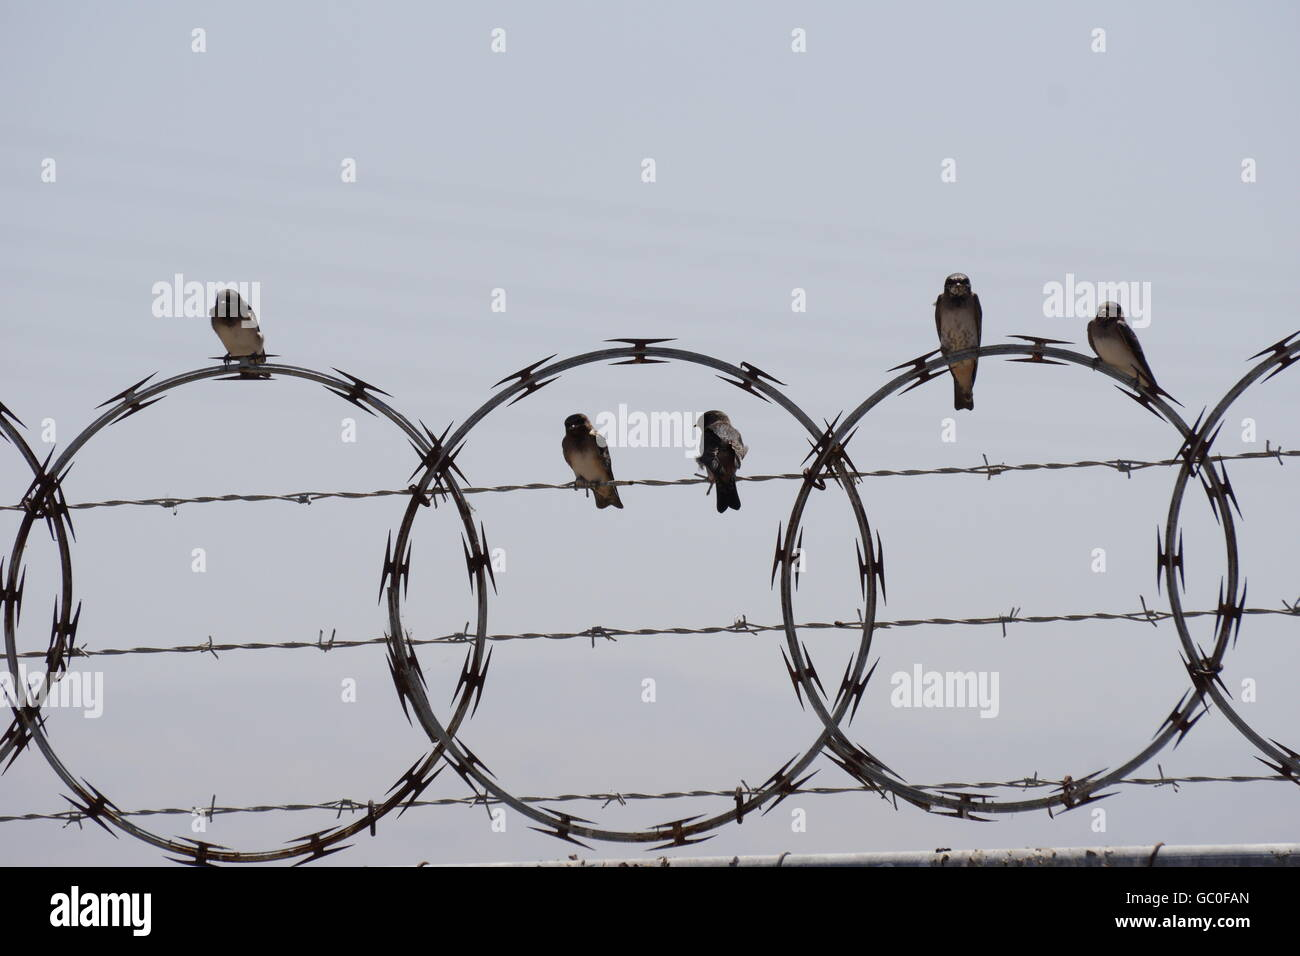 Blurred Wire Fence Stock Photos & Blurred Wire Fence Stock Images ...